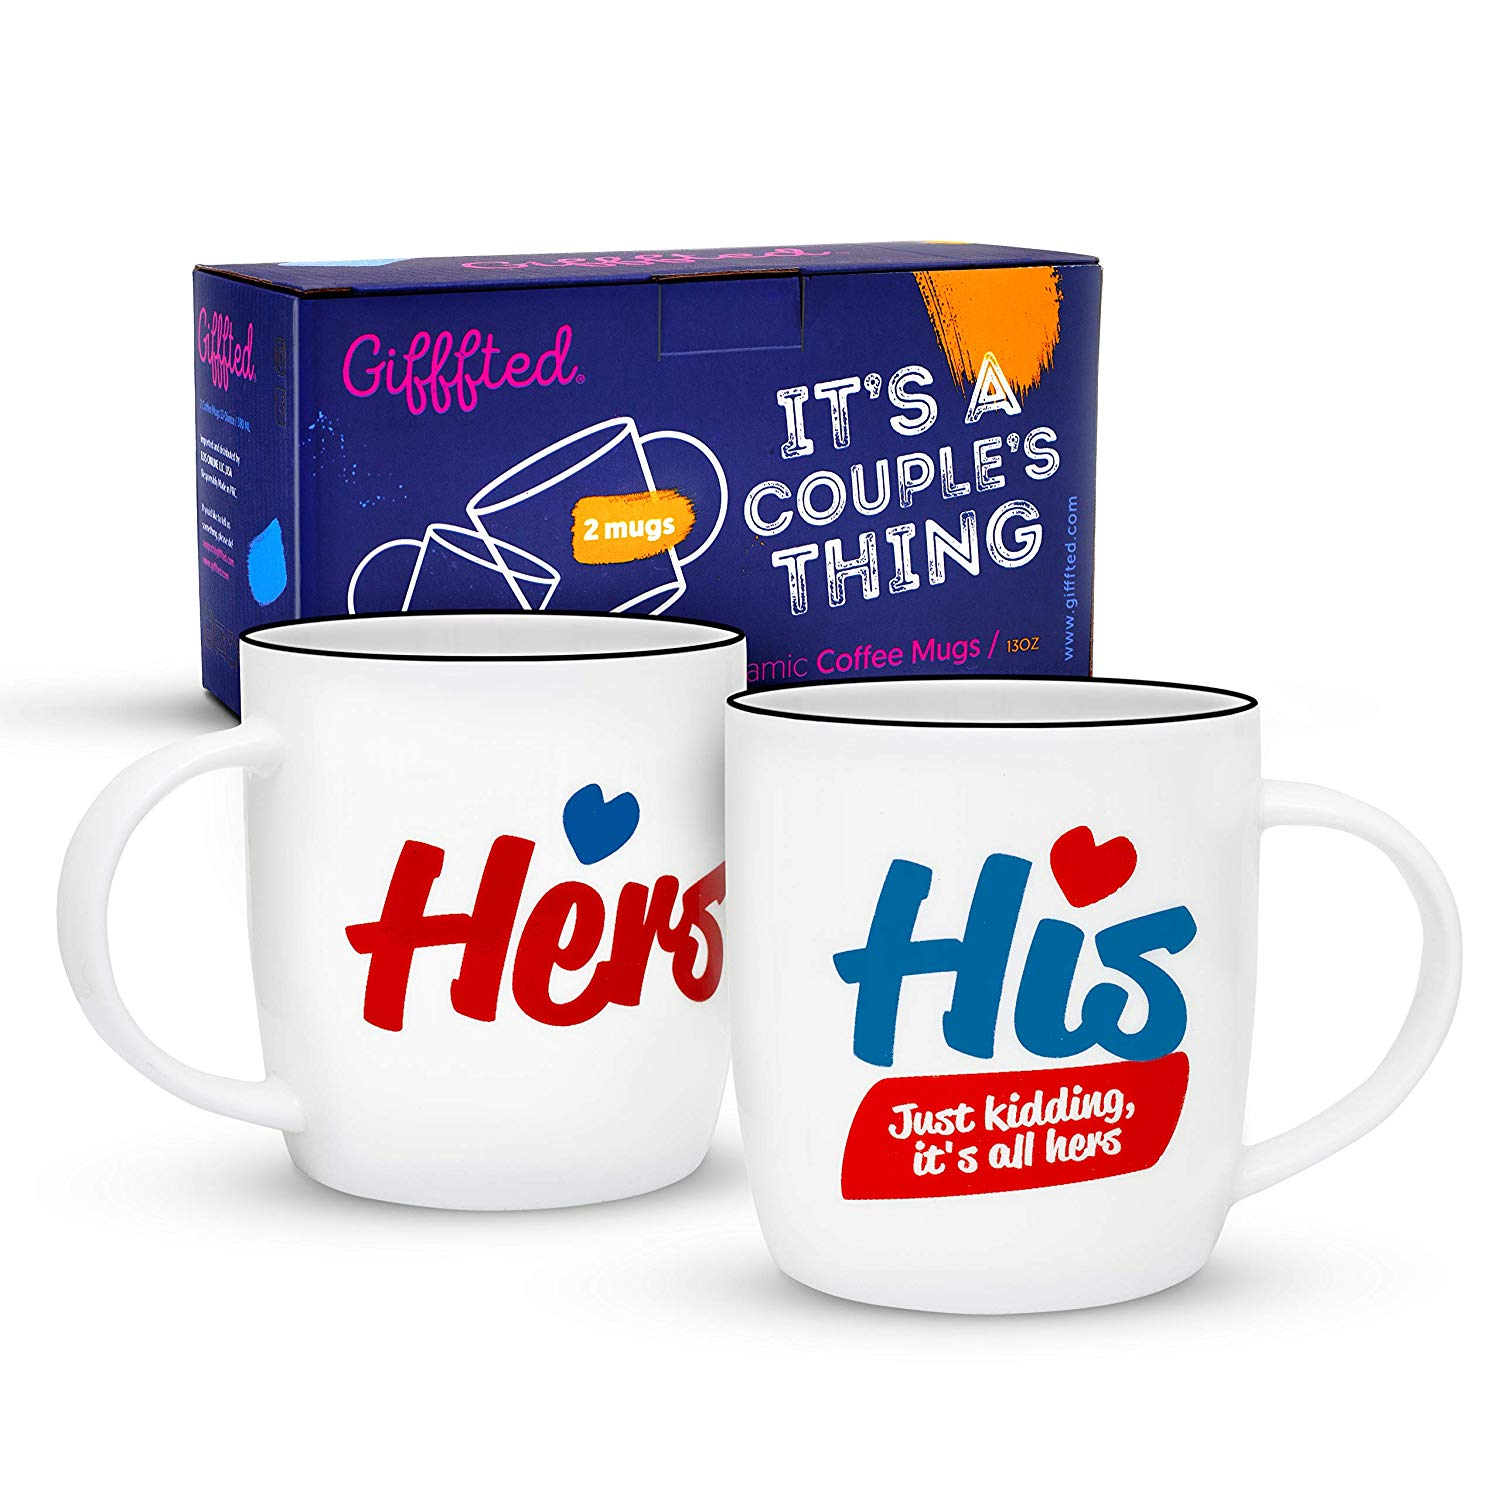 Gifffted Wedding Anniversary Gifts Mugs For Couples Just Kidding Itu0027s All Hers Coffee Mugs  sc 1 st  Walmart & Anniversary Gifts for Couples